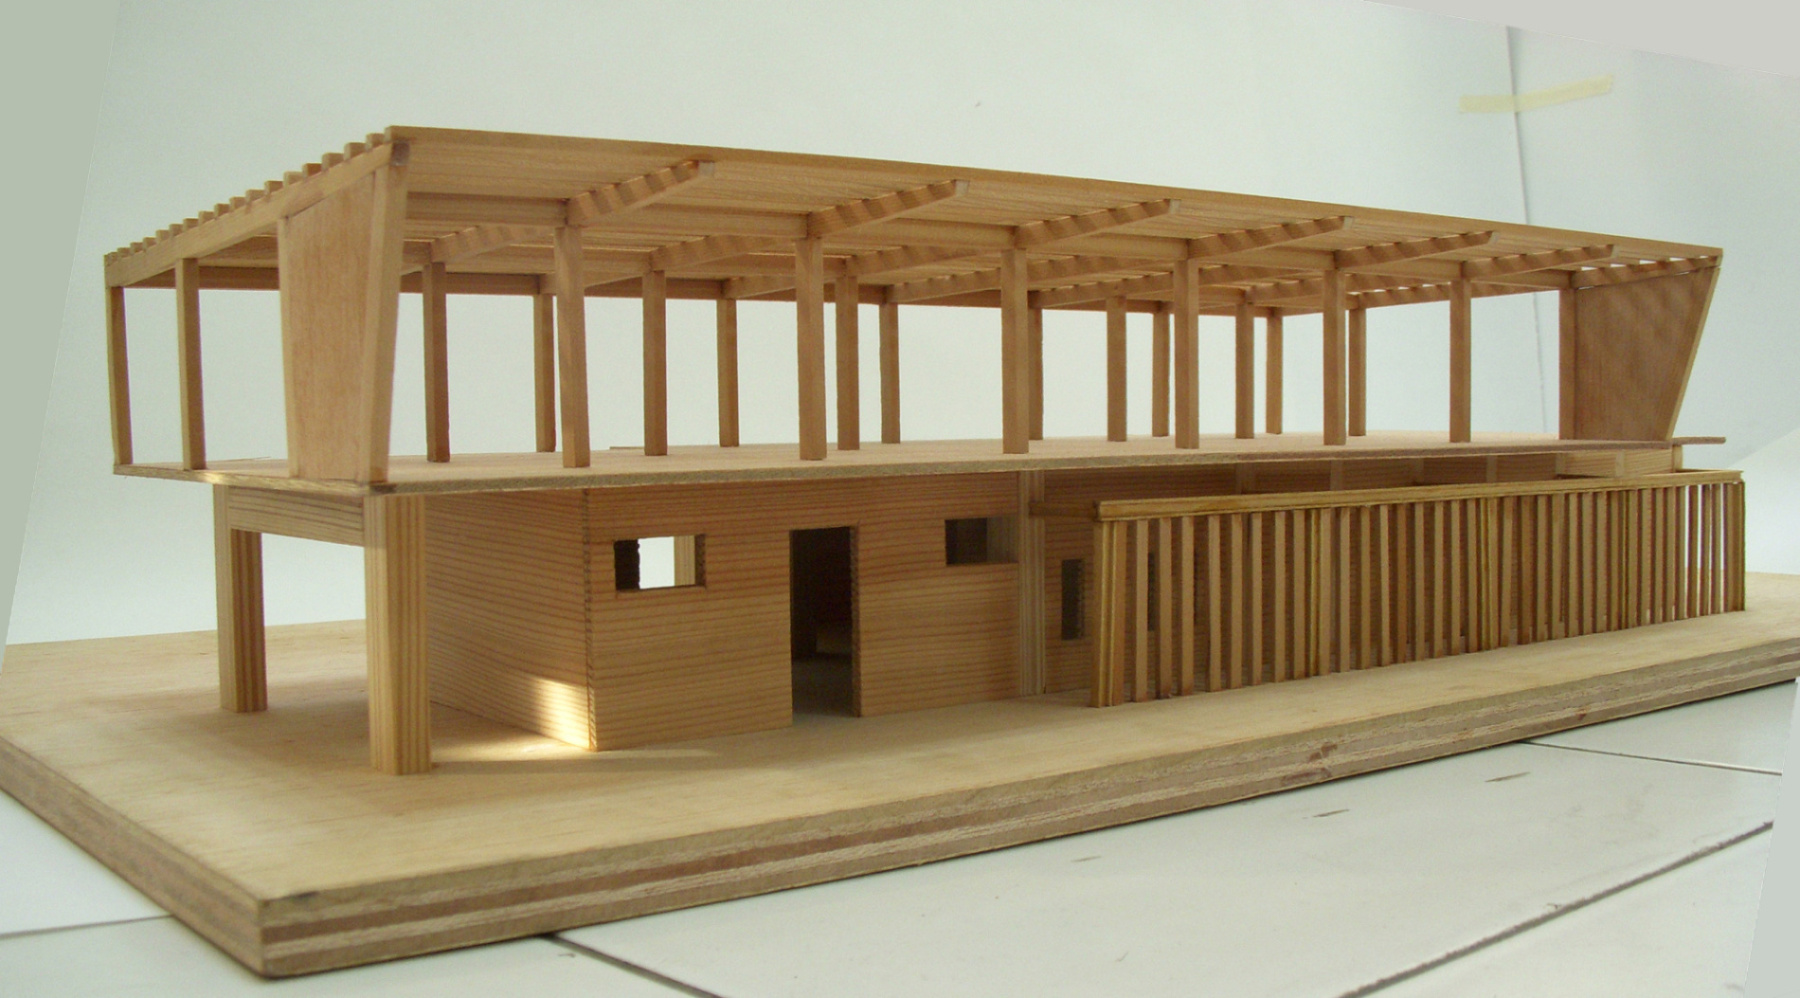 Wood and RC structure model of resident area }